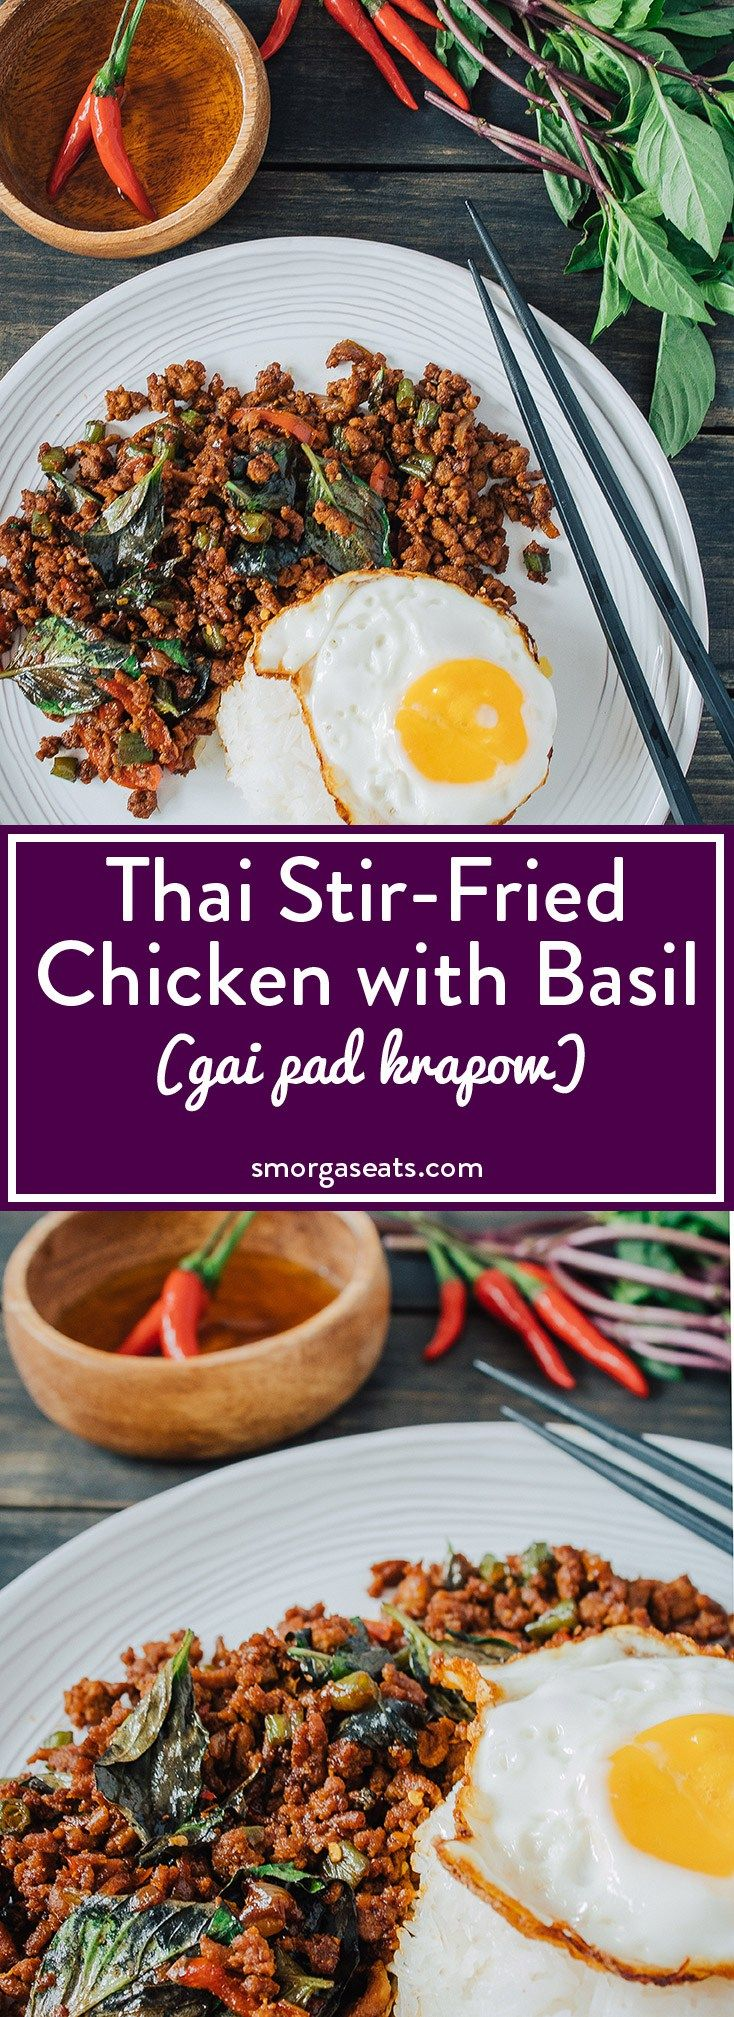 Thai Stir-Fried Chicken with Basil (Gai Pad Krapow)